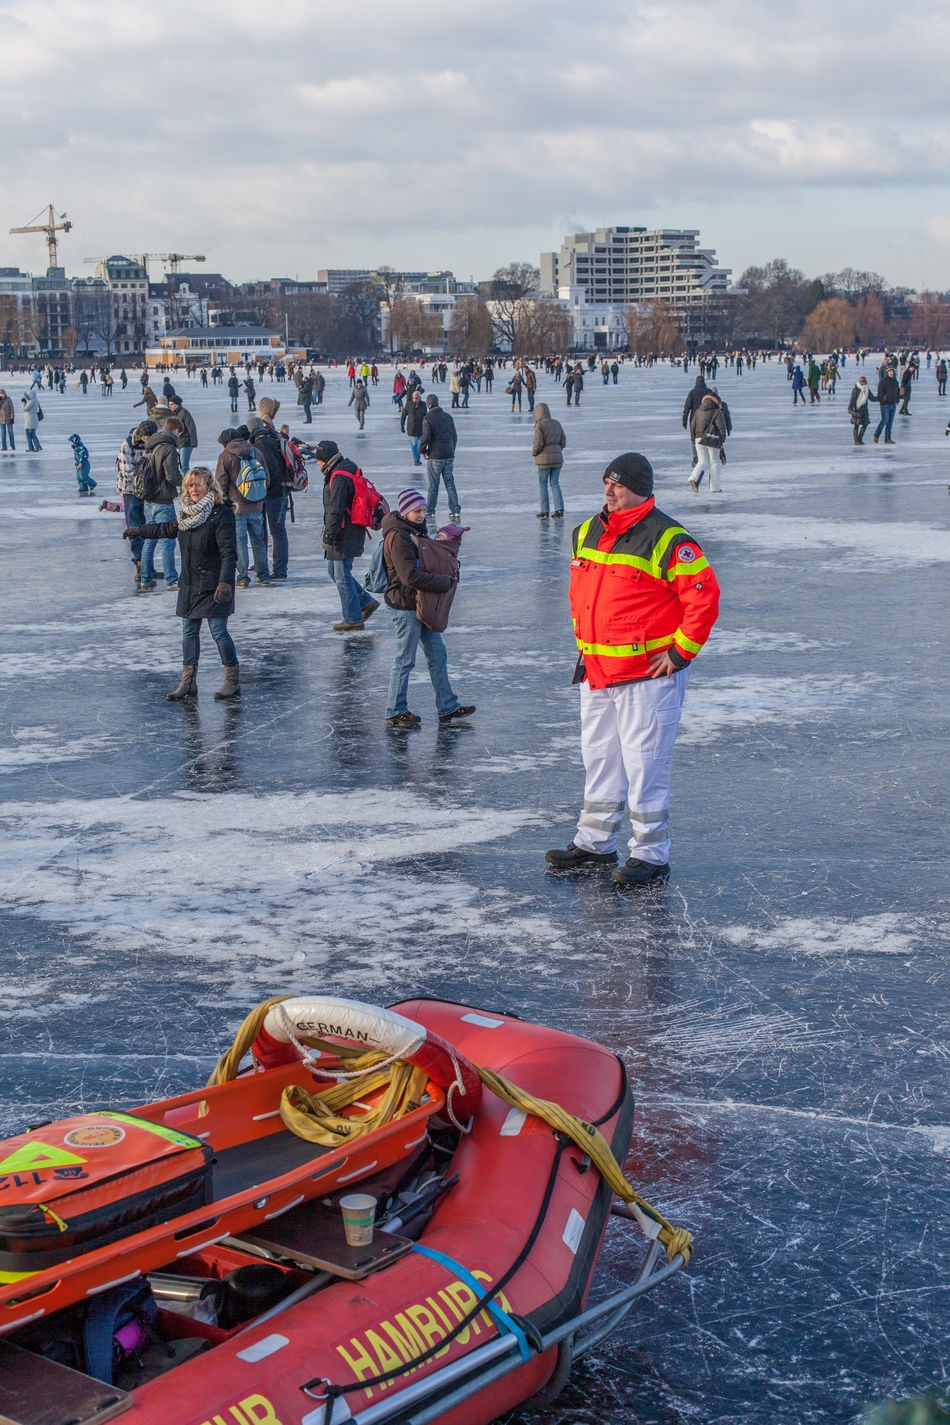 Adventure Alster Ambulance Boat Ambulance Staff City Cityscape Day Hamburg Ice Ice Skating Outdoors People Water Winter Flying High EyeEmNewHere